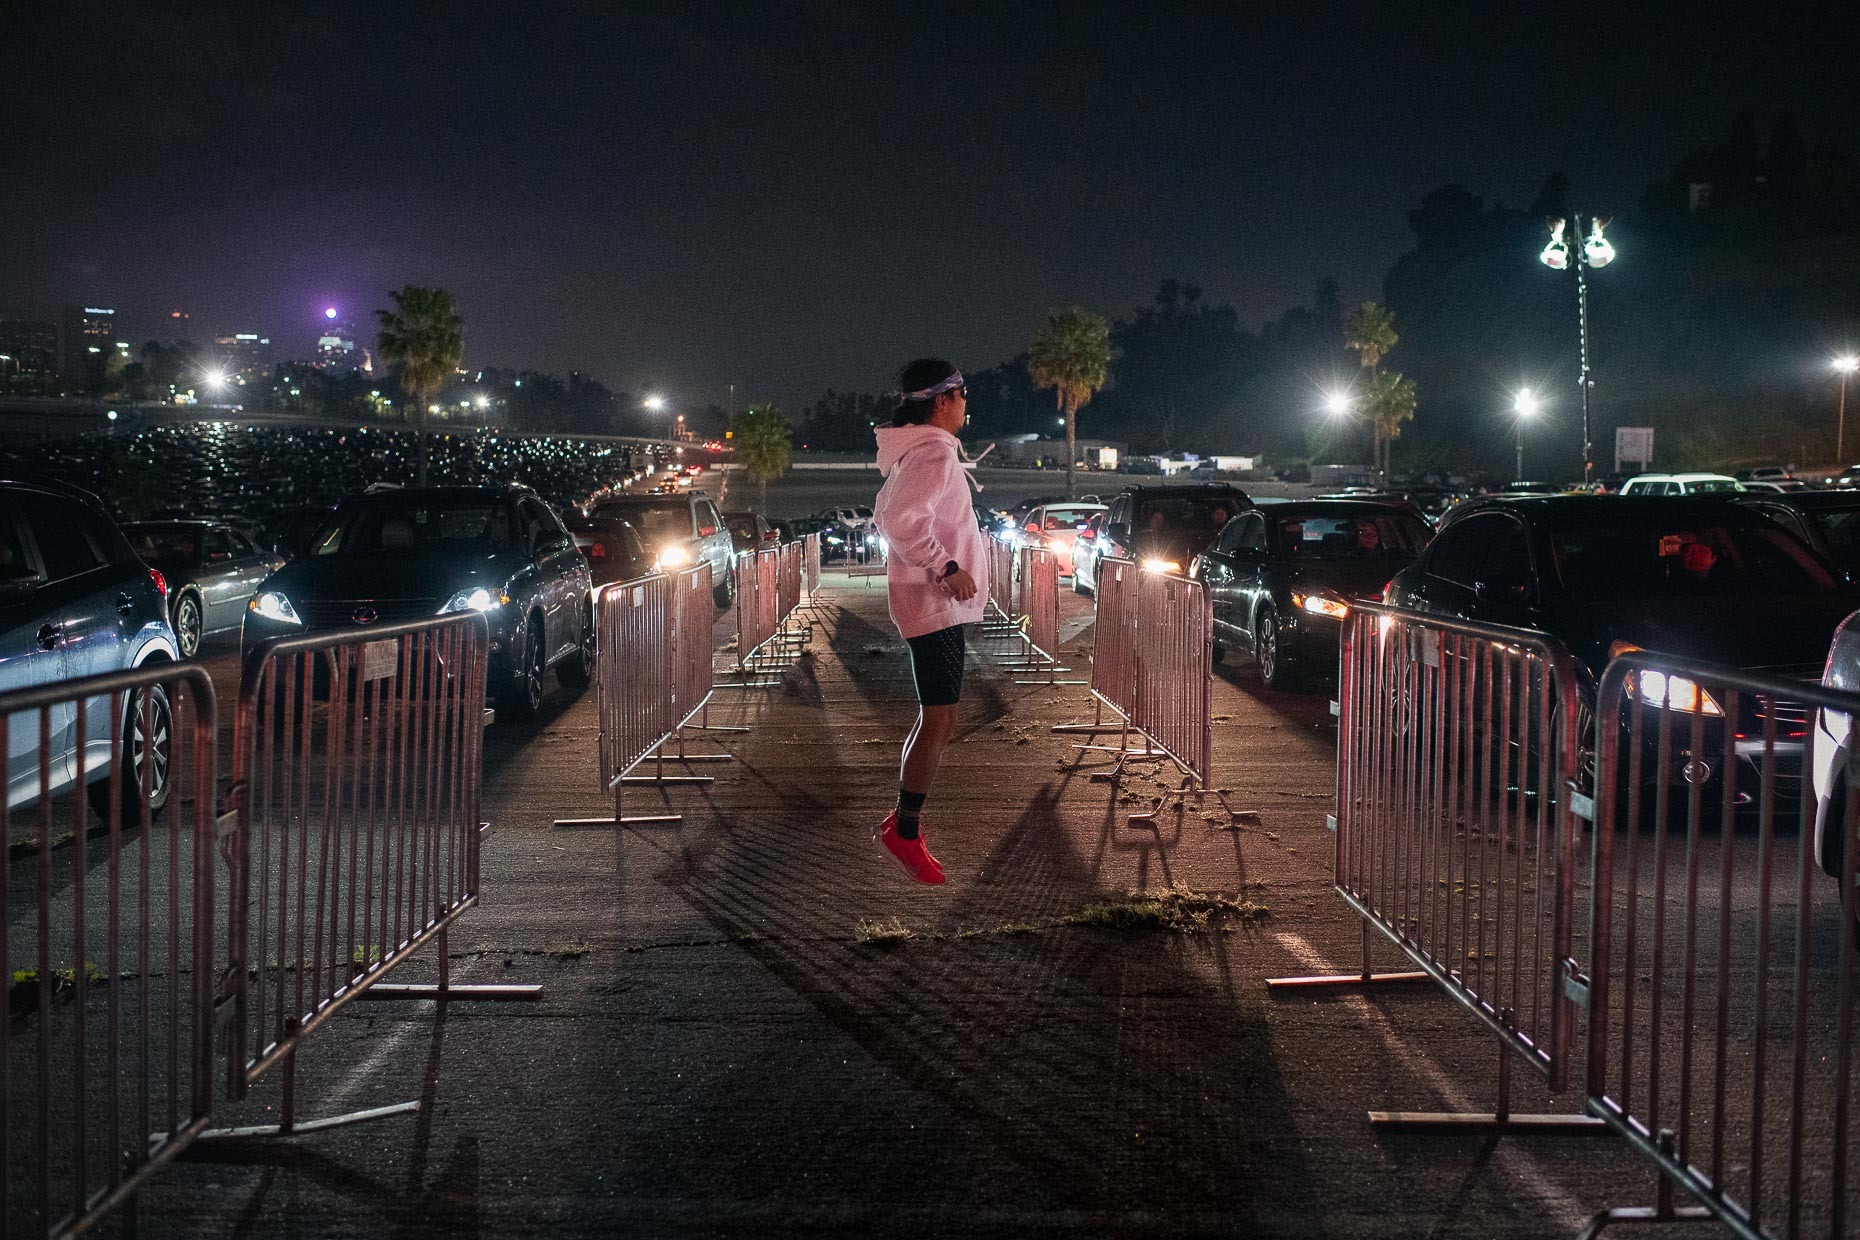 LA_Marathon_24_03_2019_photo_Christian_Brecheis-7674